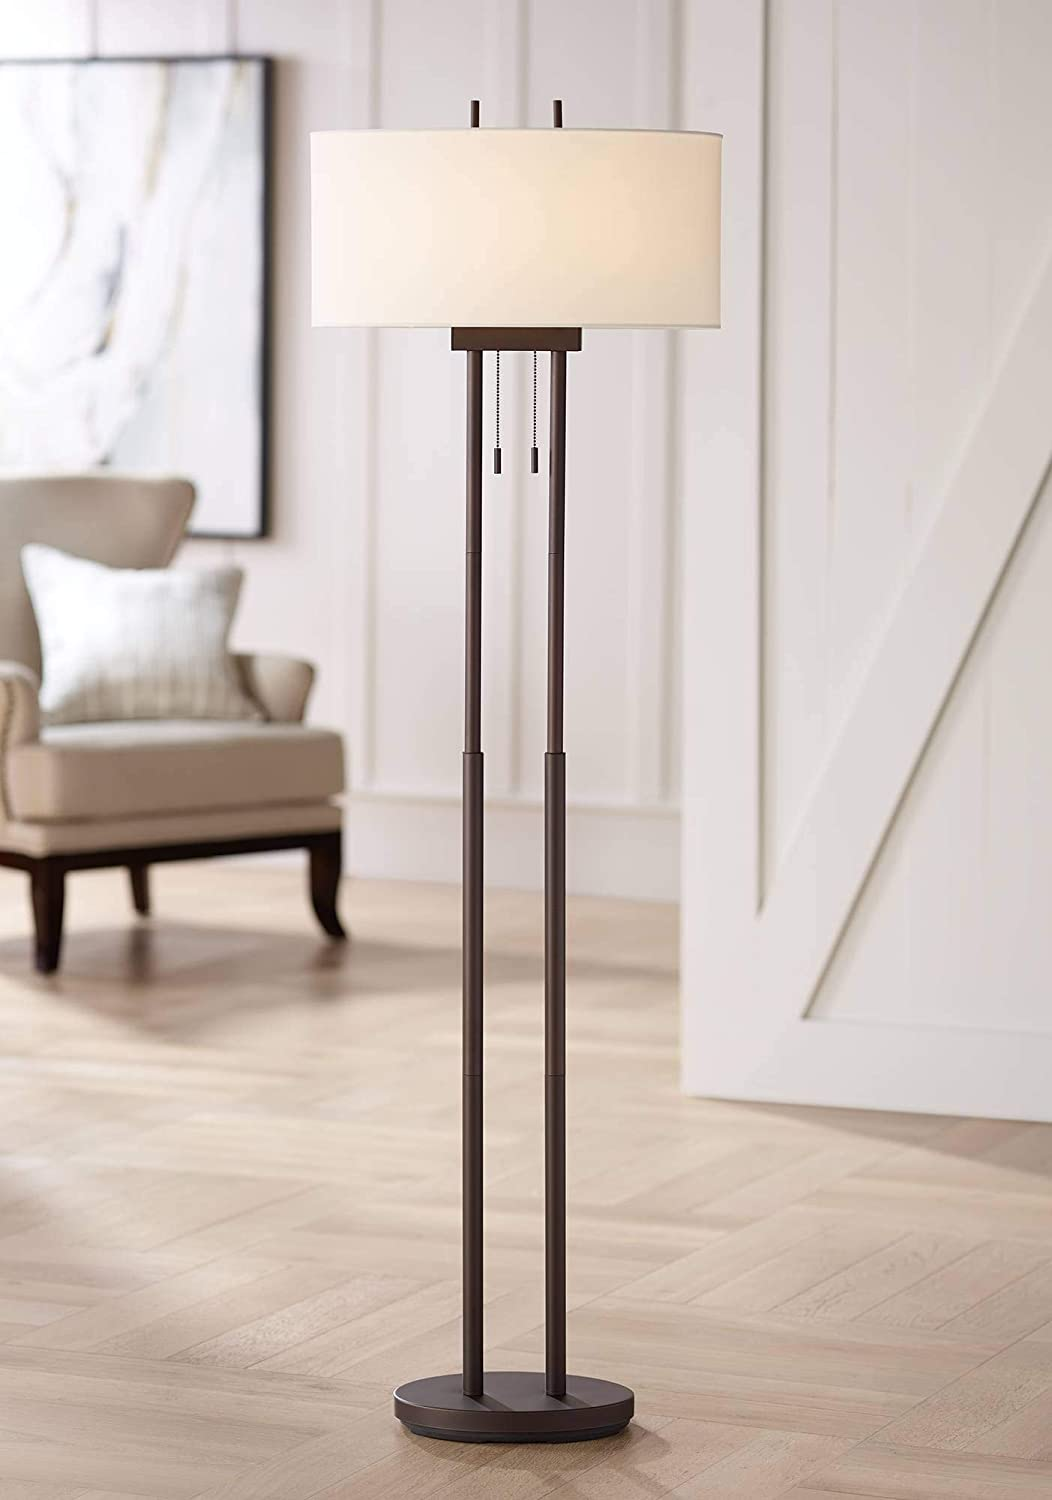 Roscoe Modern Floor Lamp Twin Pole Oil Rubbed Bronze White Drum Shade for Living Room Reading Bedroom Office – 360 Lighting